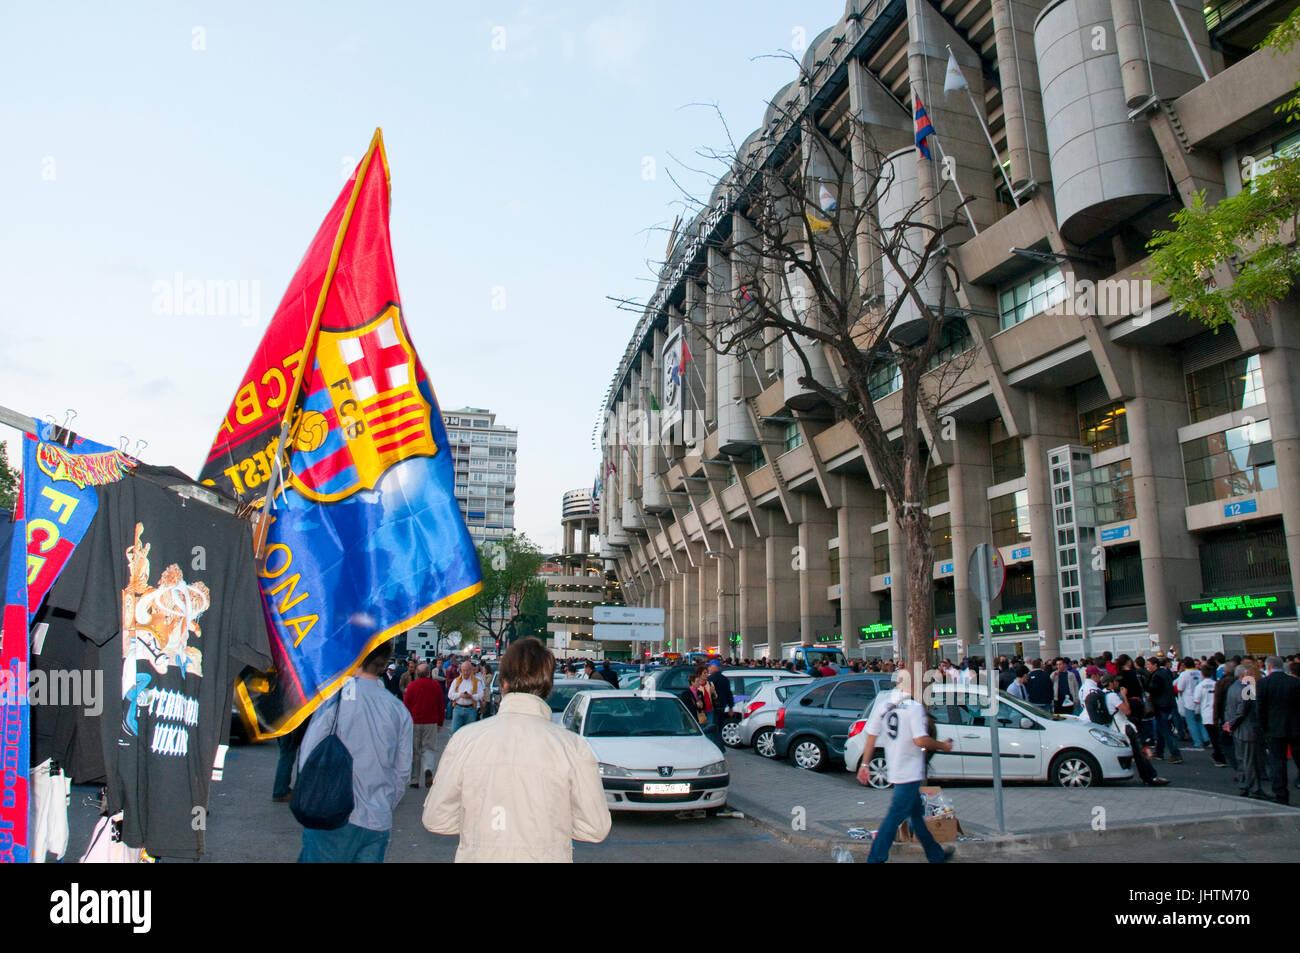 Atmosphere before the Real Madrid-Barcelona football match. Santiago Bernabeu stadium, Madrid, Spain. Stock Photo